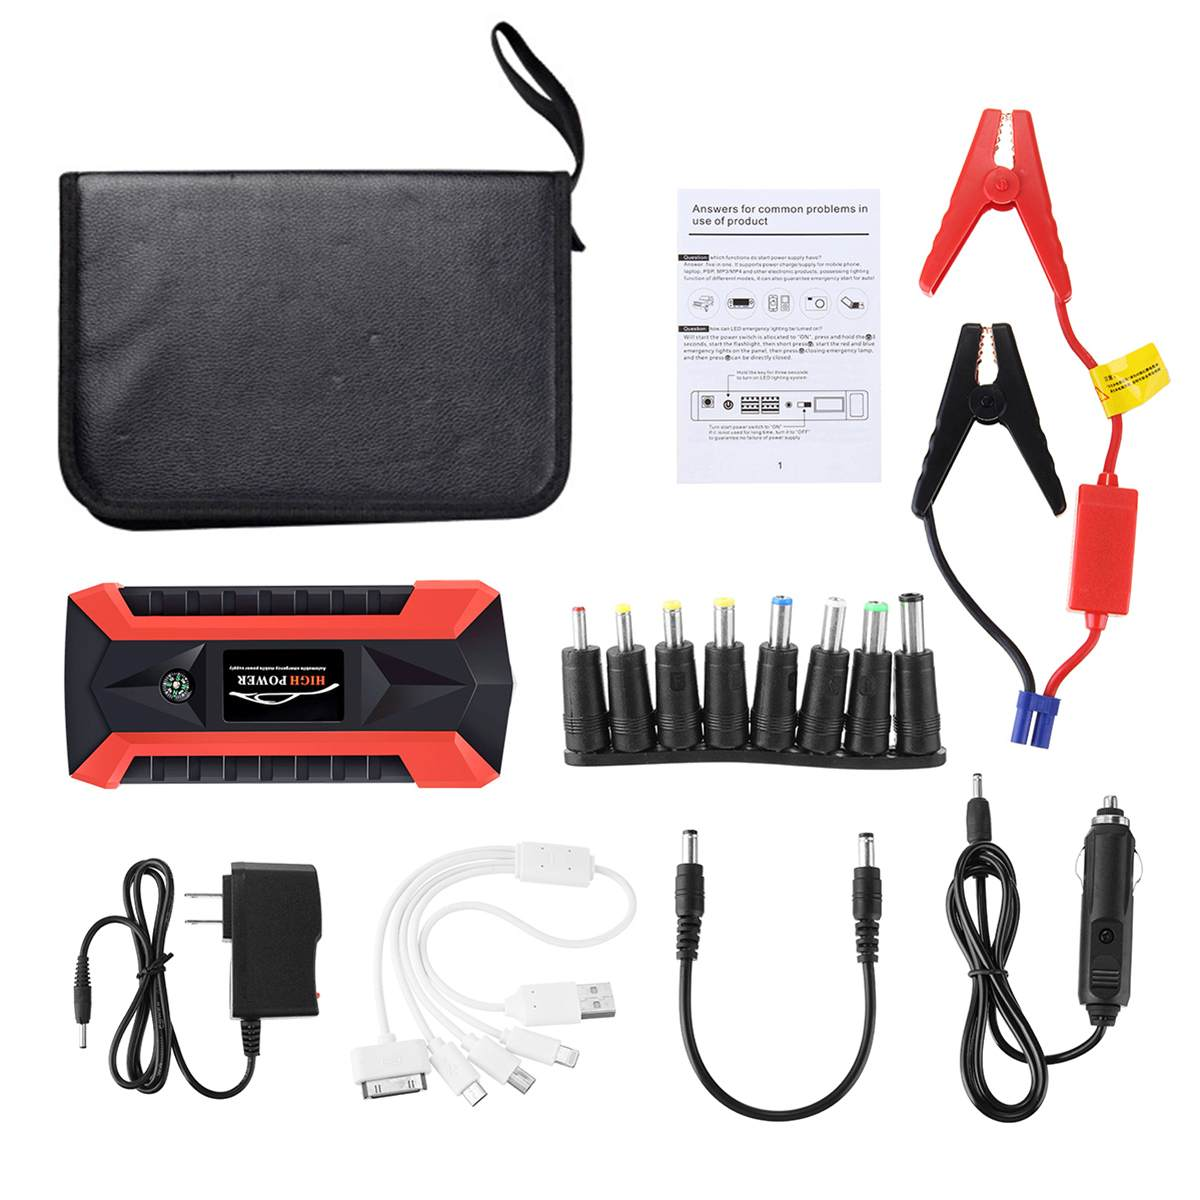 89800mAh 4USB Car Jump Starter Multifunction Emergency Charger Battery Power Bank Pack Booster 12V Starting Device Waterproof 89800mah led emergency car jump starter 12v 4usb charger battery power bank portable car battery booster charger starting device